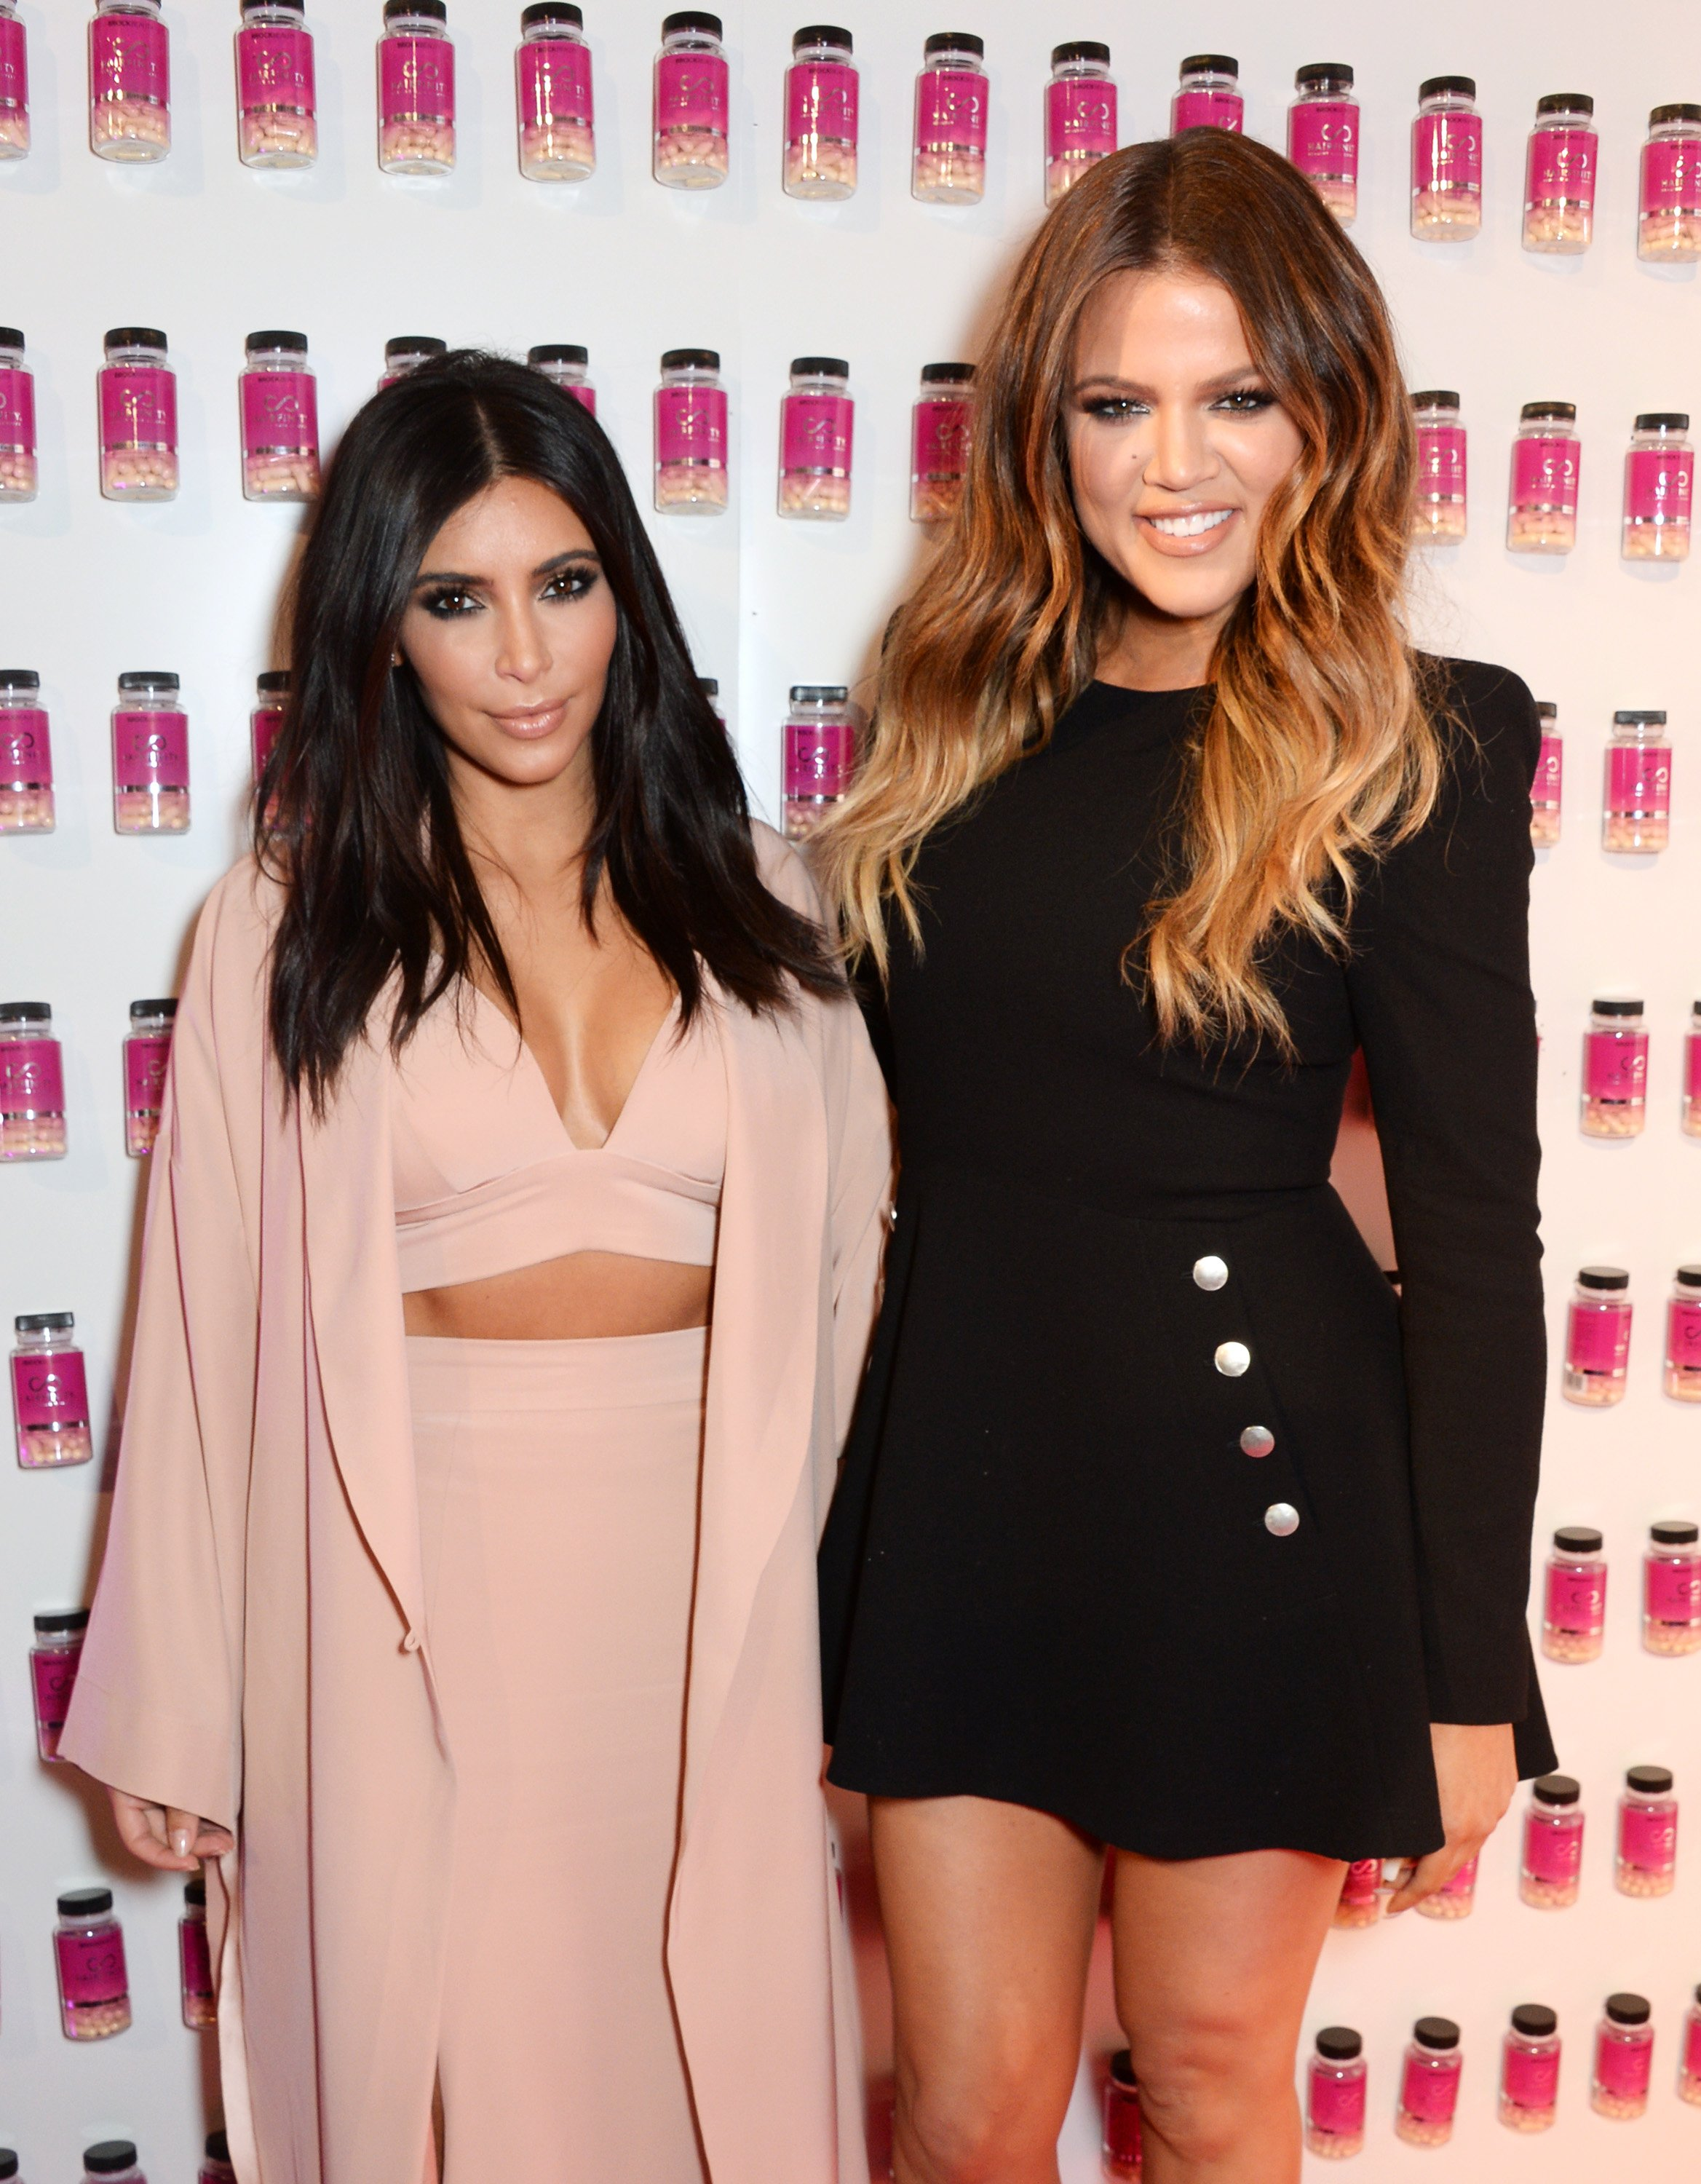 Kim Kardashian West and Khloe Kardashian attend the Hairfinity UK Launch as special guests at Il Bottaccio on November 8, 2014. | Source: Getty Images